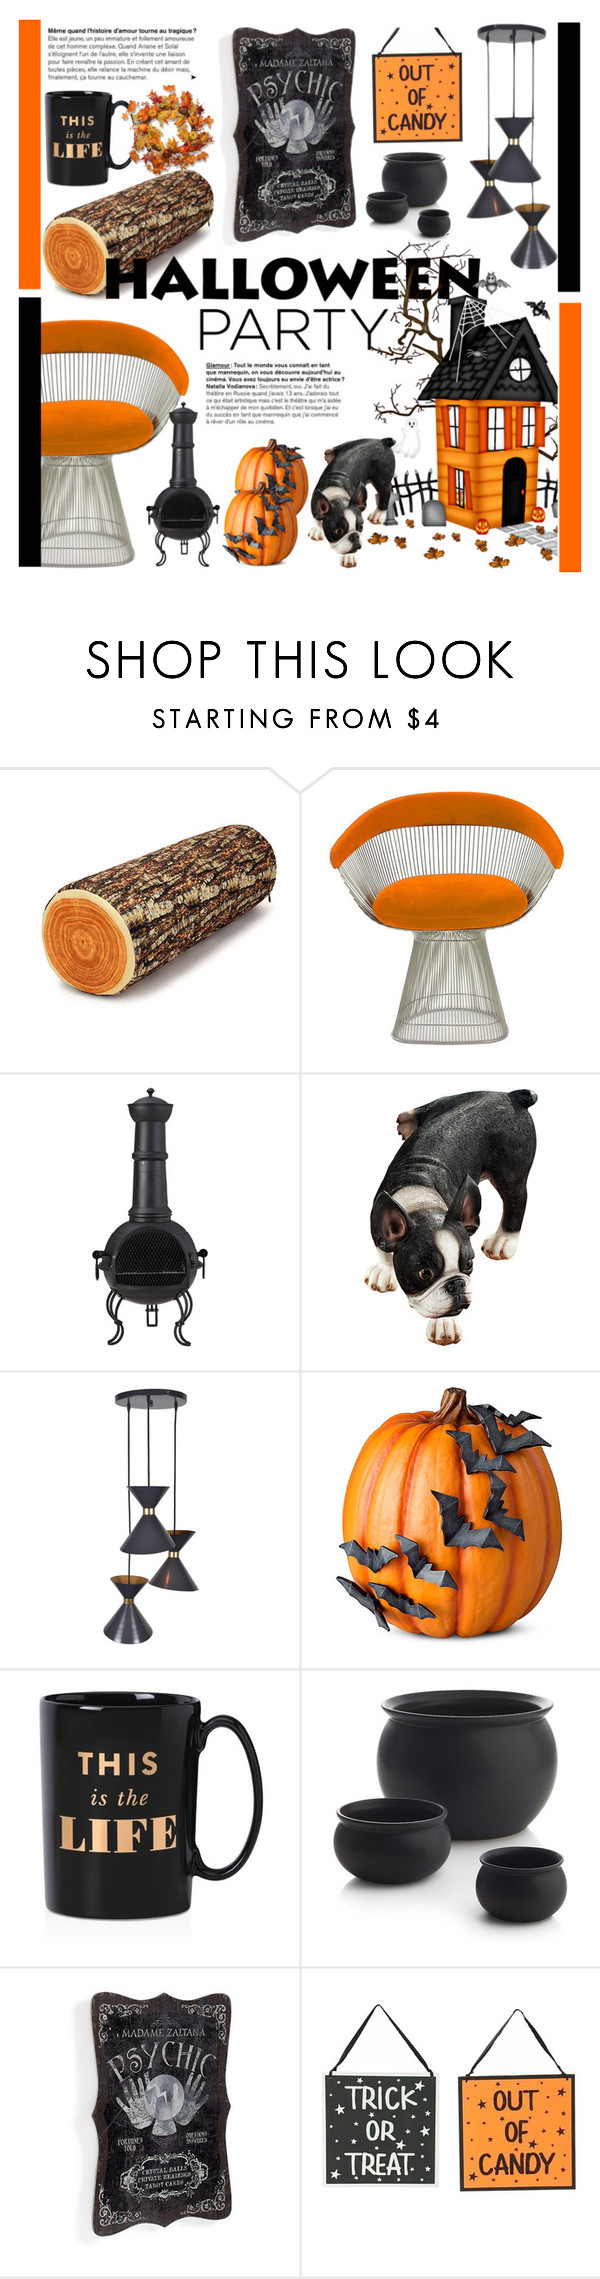 """""""Decorating Inspiration: Halloween Party"""" by cstarzforhome ❤ liked on Polyvore featuring interior, interiors, interior design, home, home decor, interior decorating, Knoll, La Hacienda, Improvements and Kate Spade"""